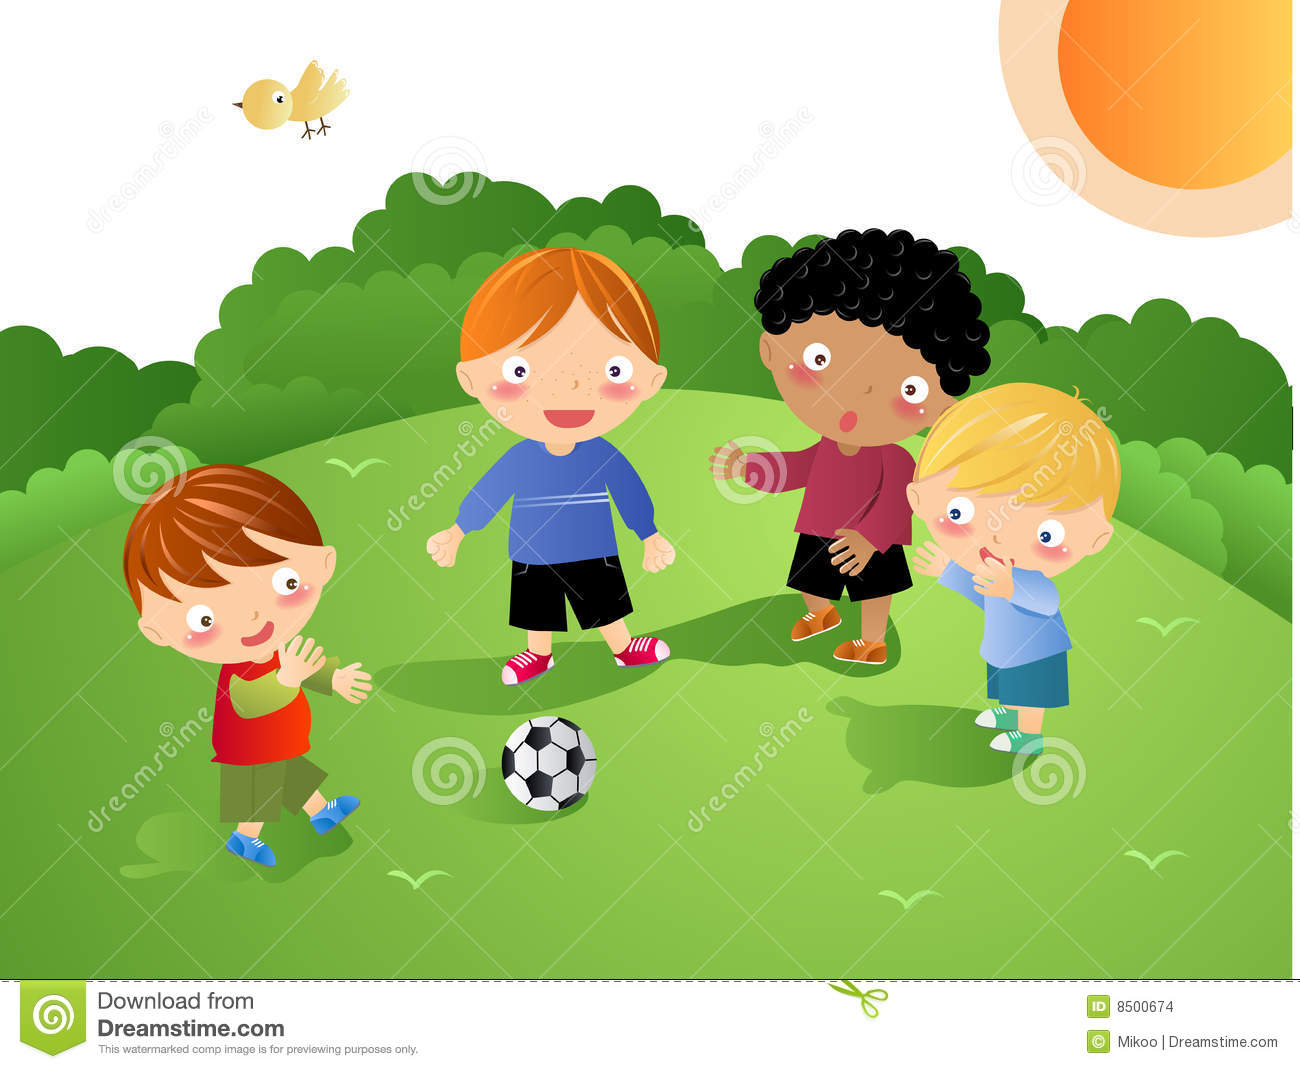 Football clipart kid football Playing kids Football Clipart collection